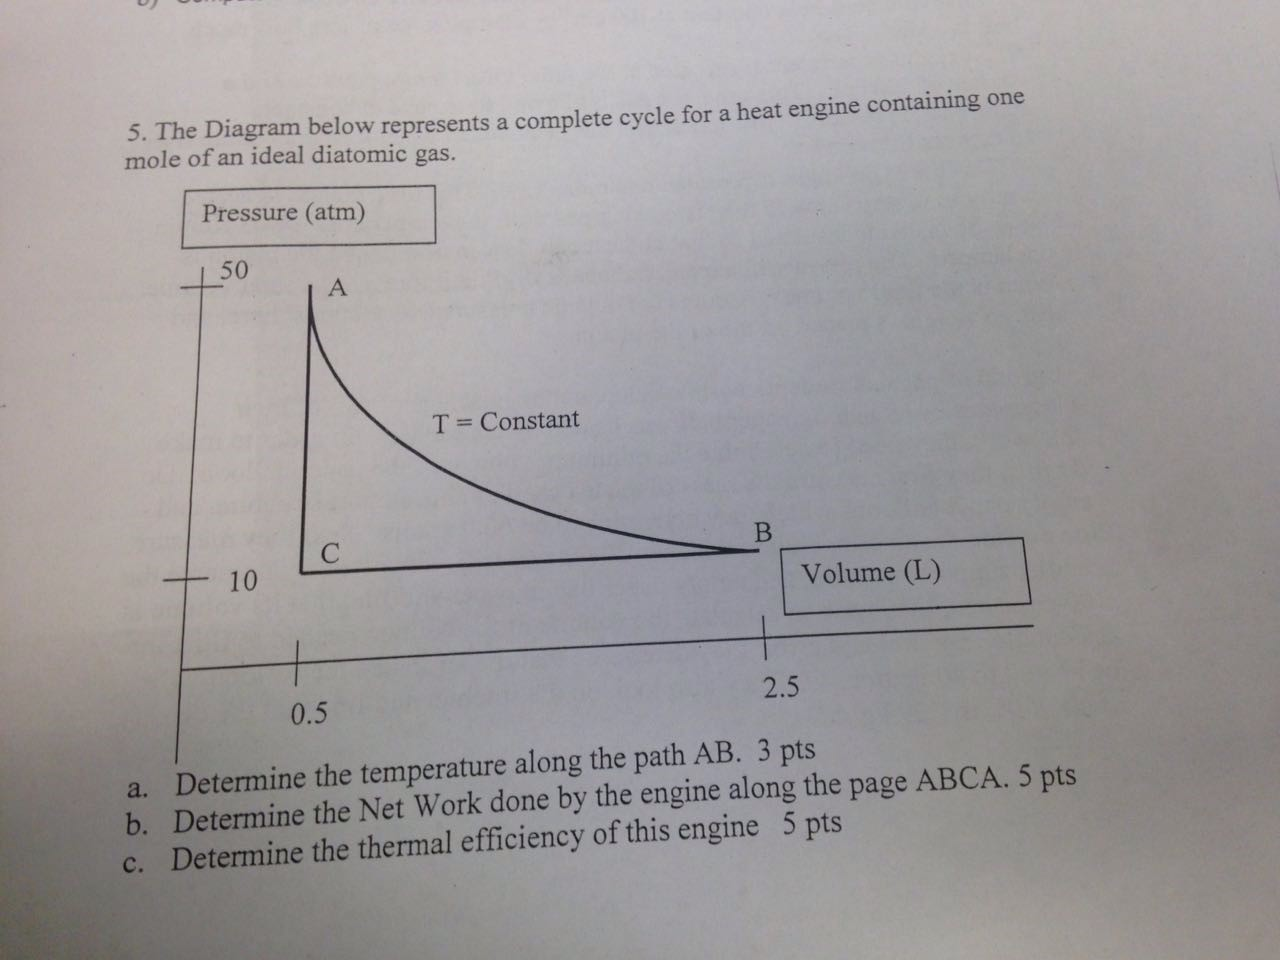 The Diagram below represents a complete cycle for a heat engine containing